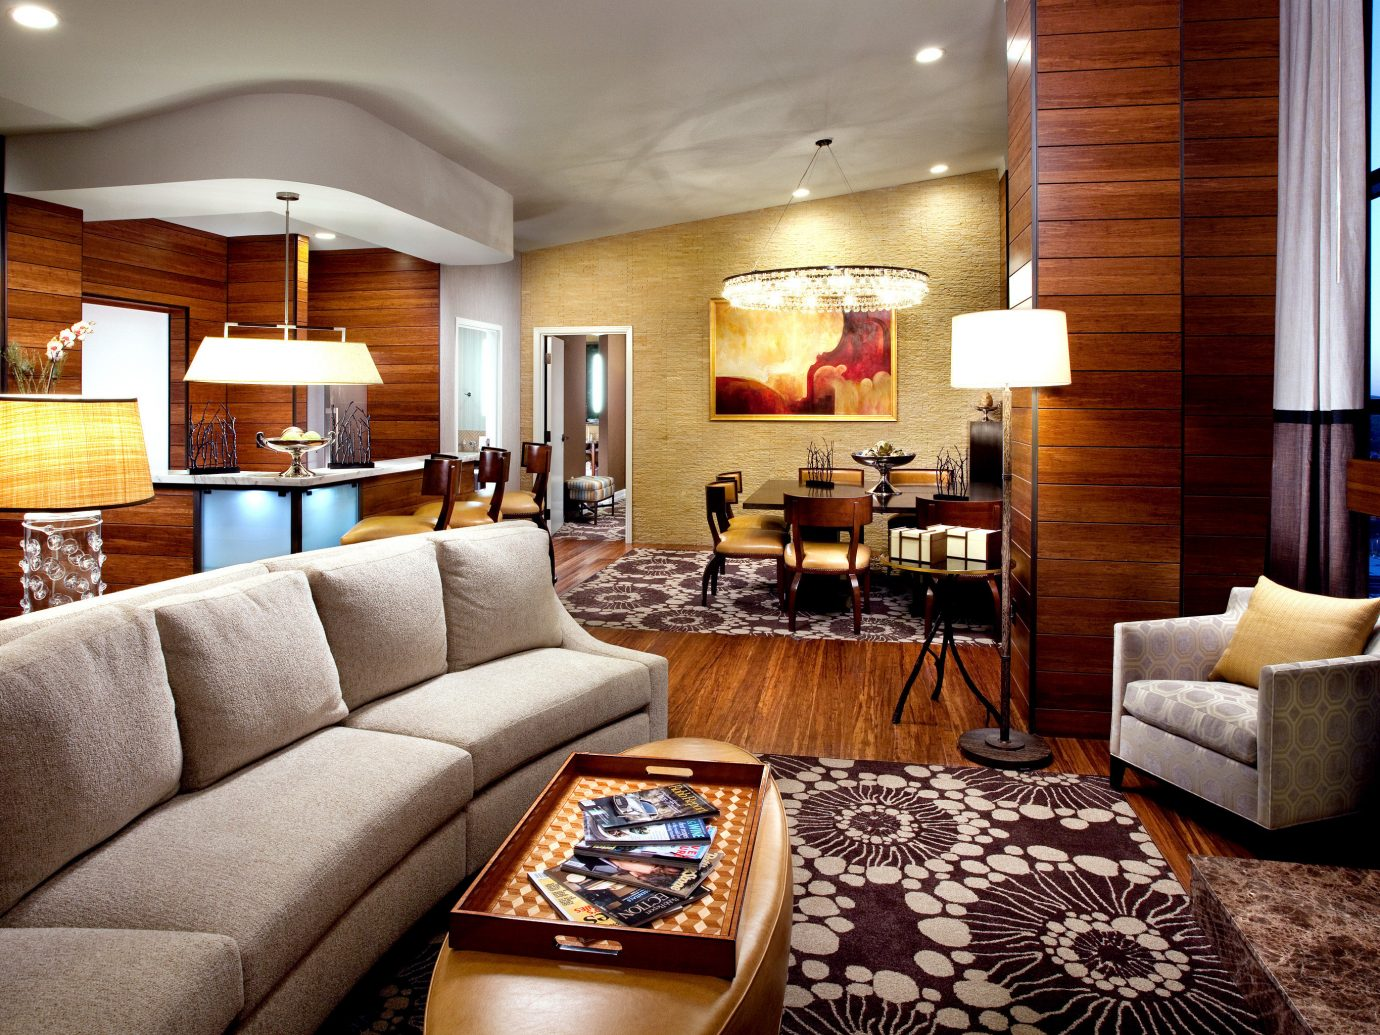 Boutique Hotels Hip Lounge Modern Trip Ideas indoor sofa Living room floor ceiling property living room estate Suite home interior design furniture real estate cottage condominium decorated area leather wood